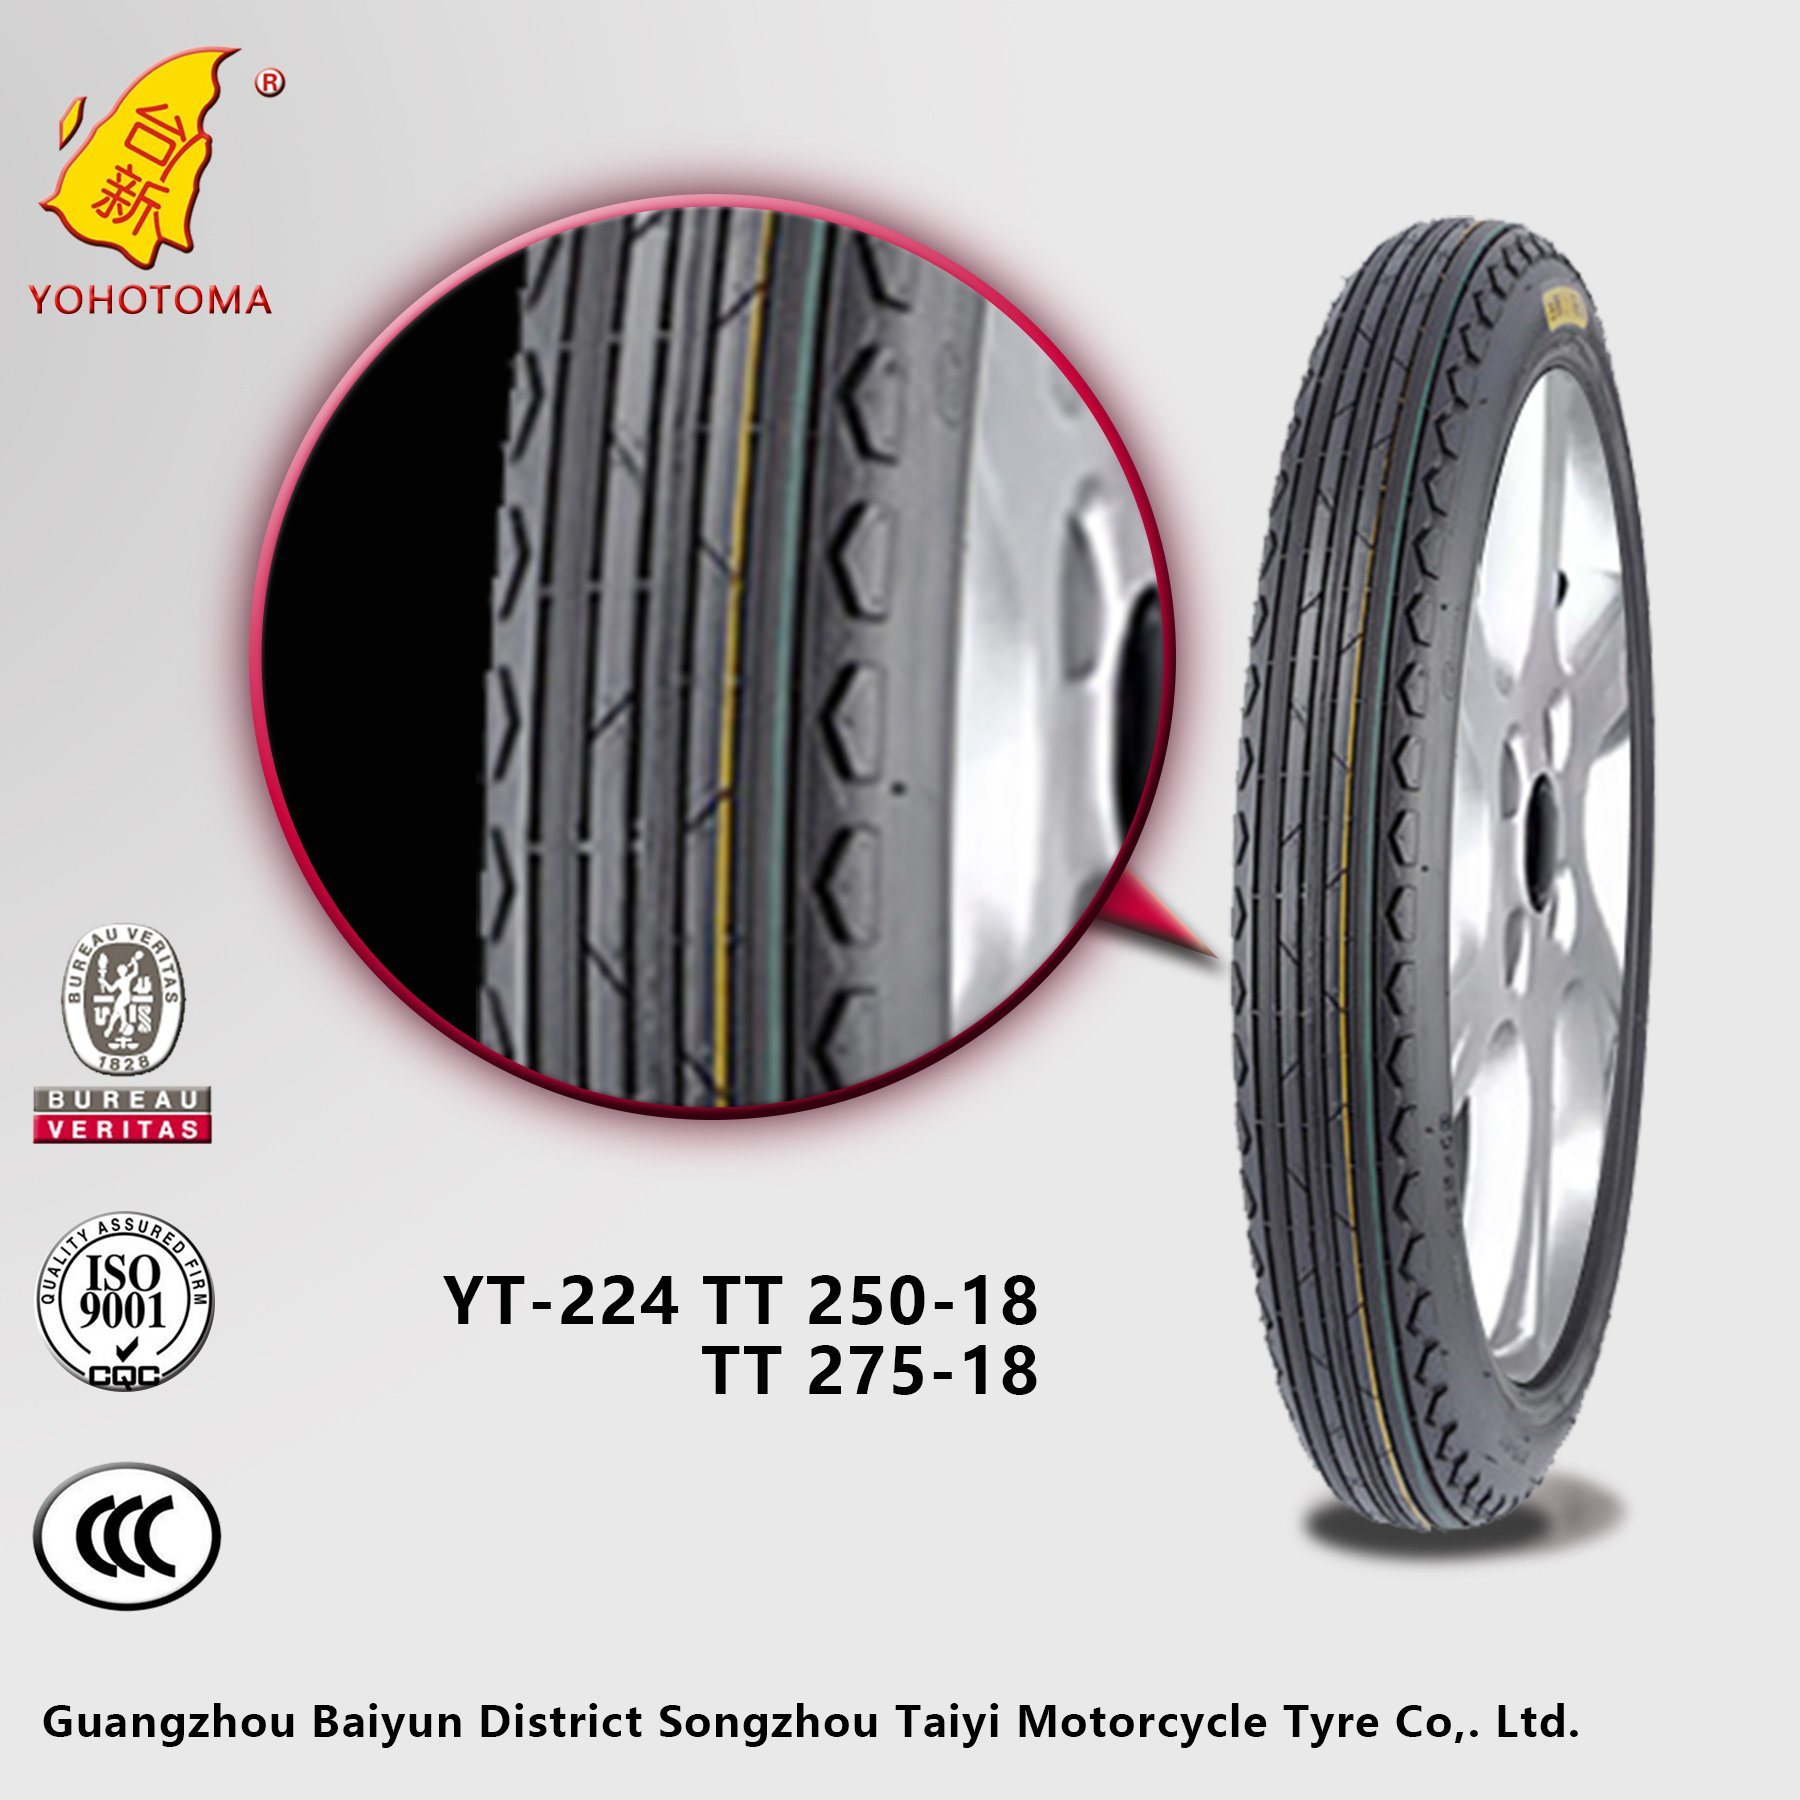 China Low Price Good Quality Motorcycle Tyre YT-224 TT275-18